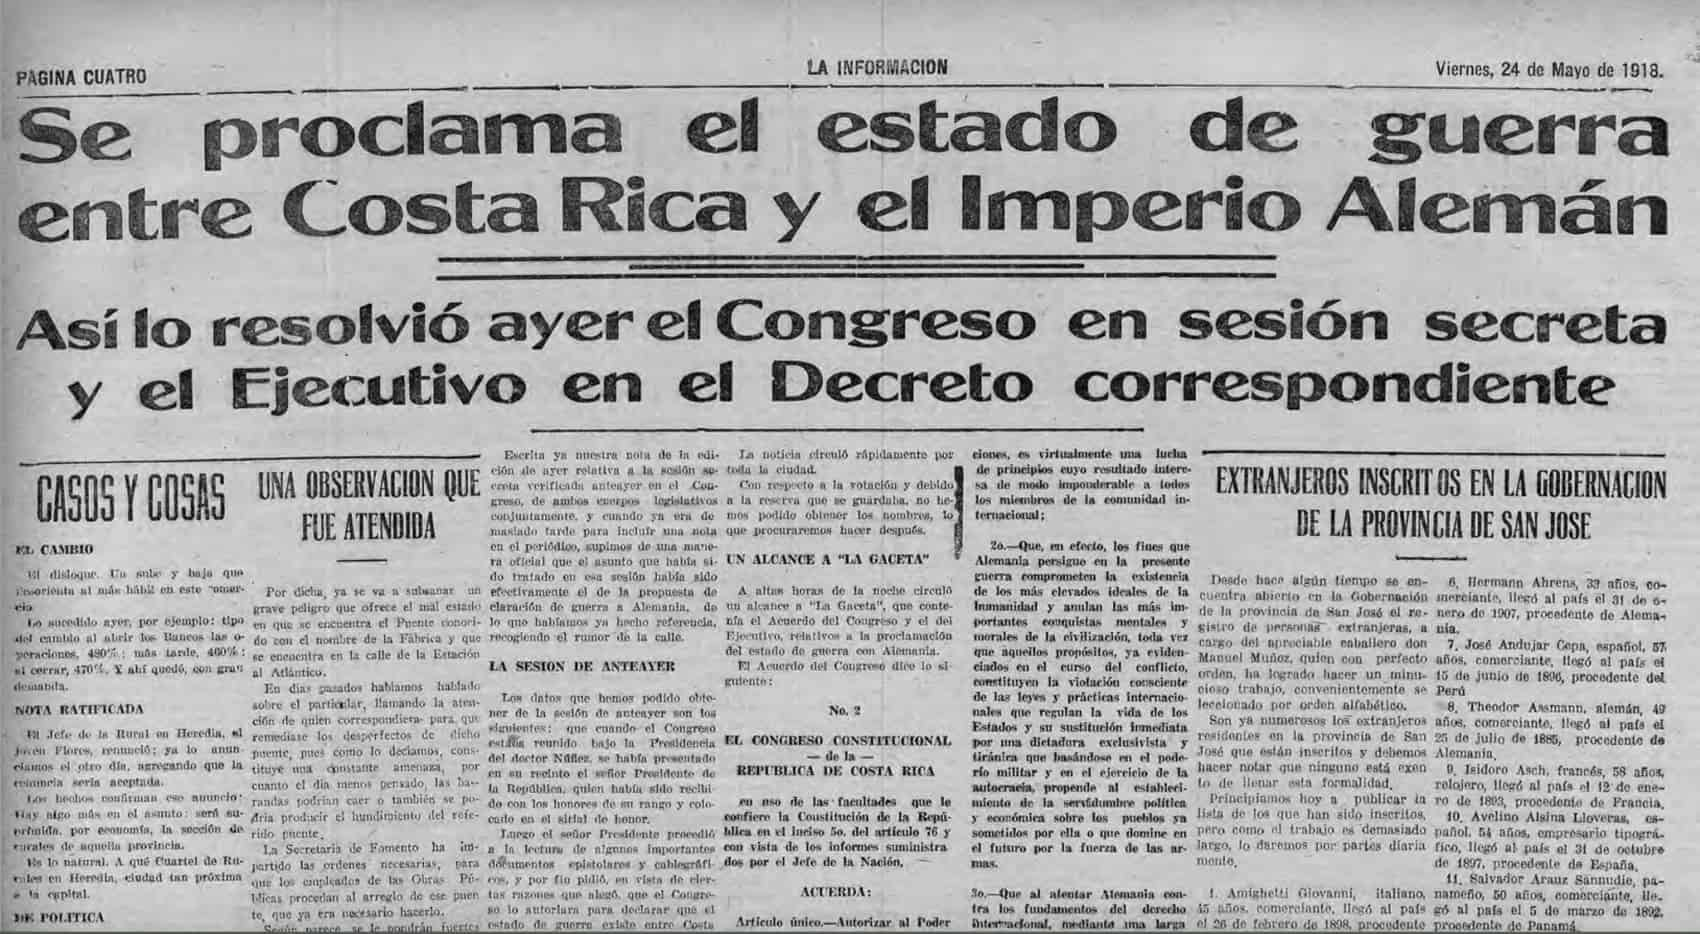 Costa Rica World War 1: Declaration of war against the German Empire.